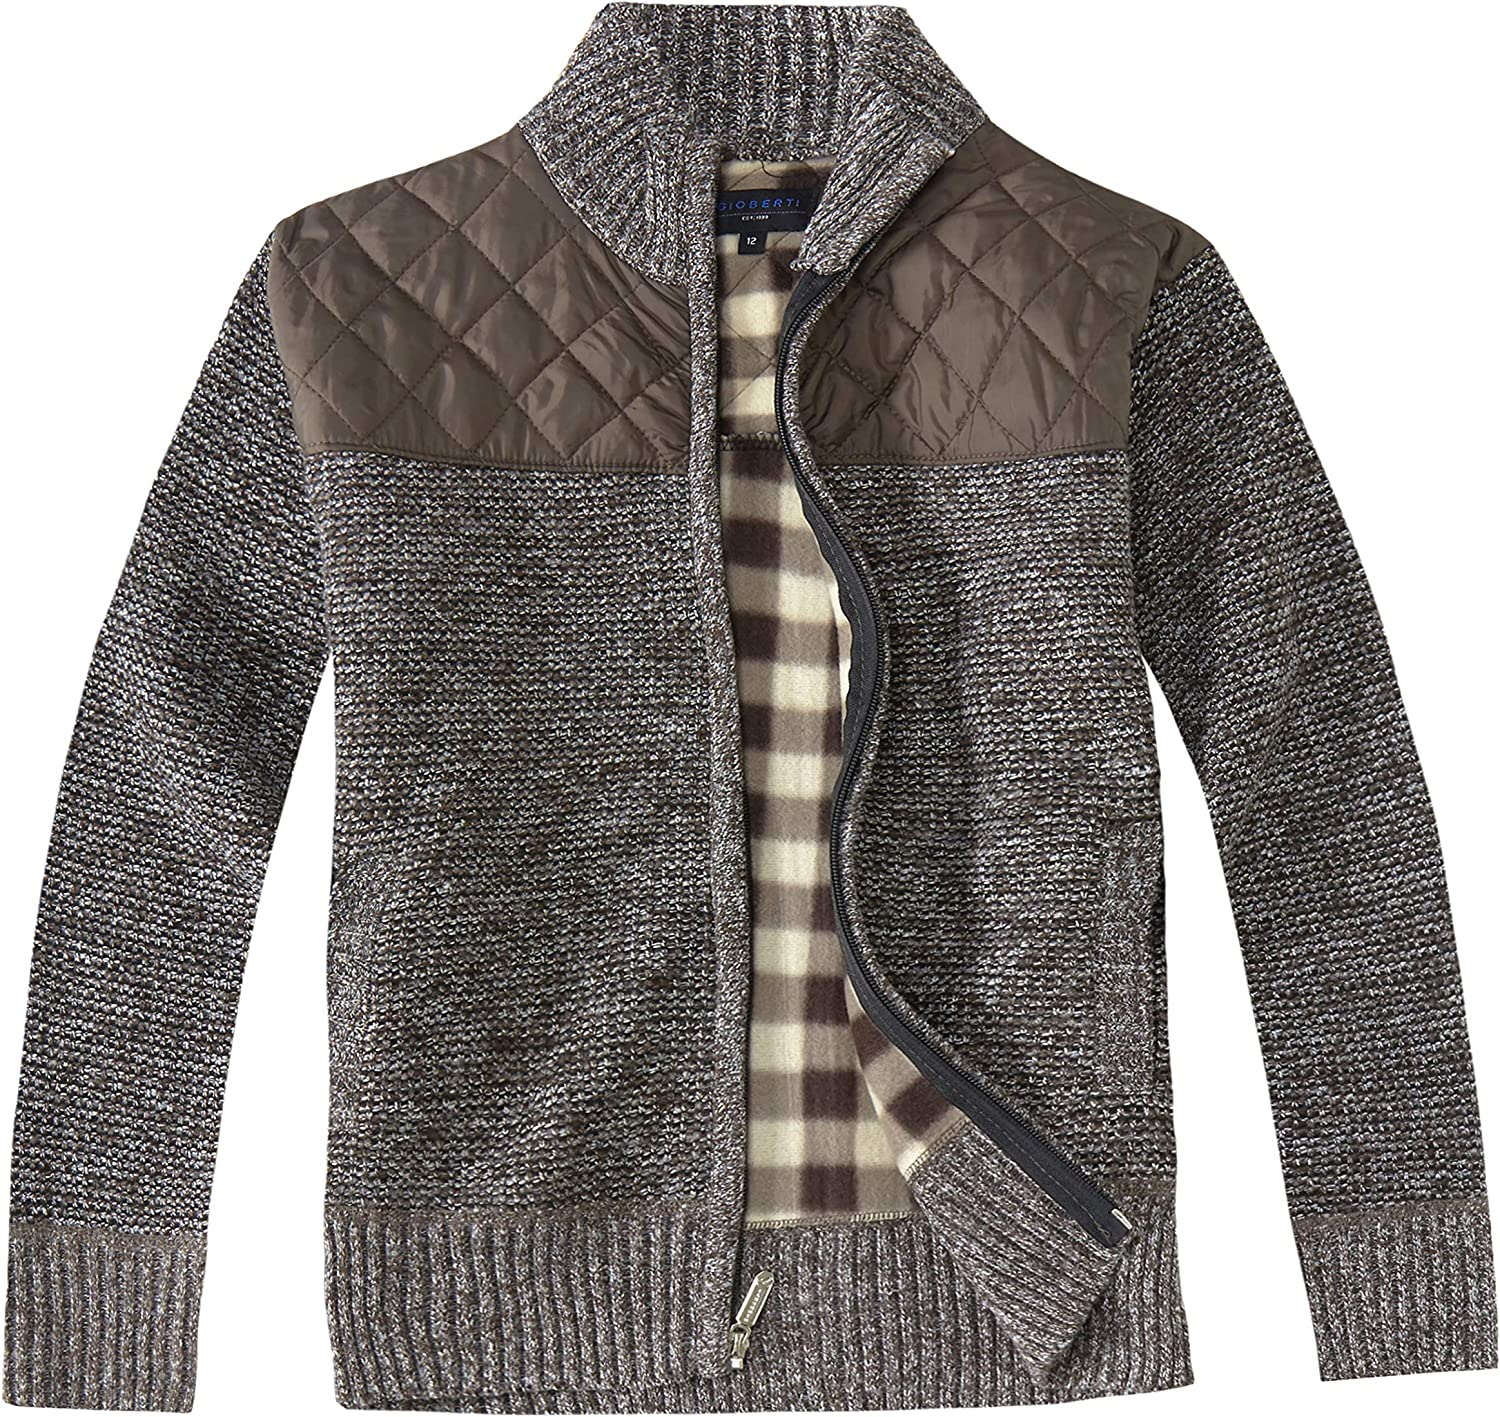 Gioberti Boys Knitted Full Zip Cardigan Sweater with Soft Brushed Flannel Lining